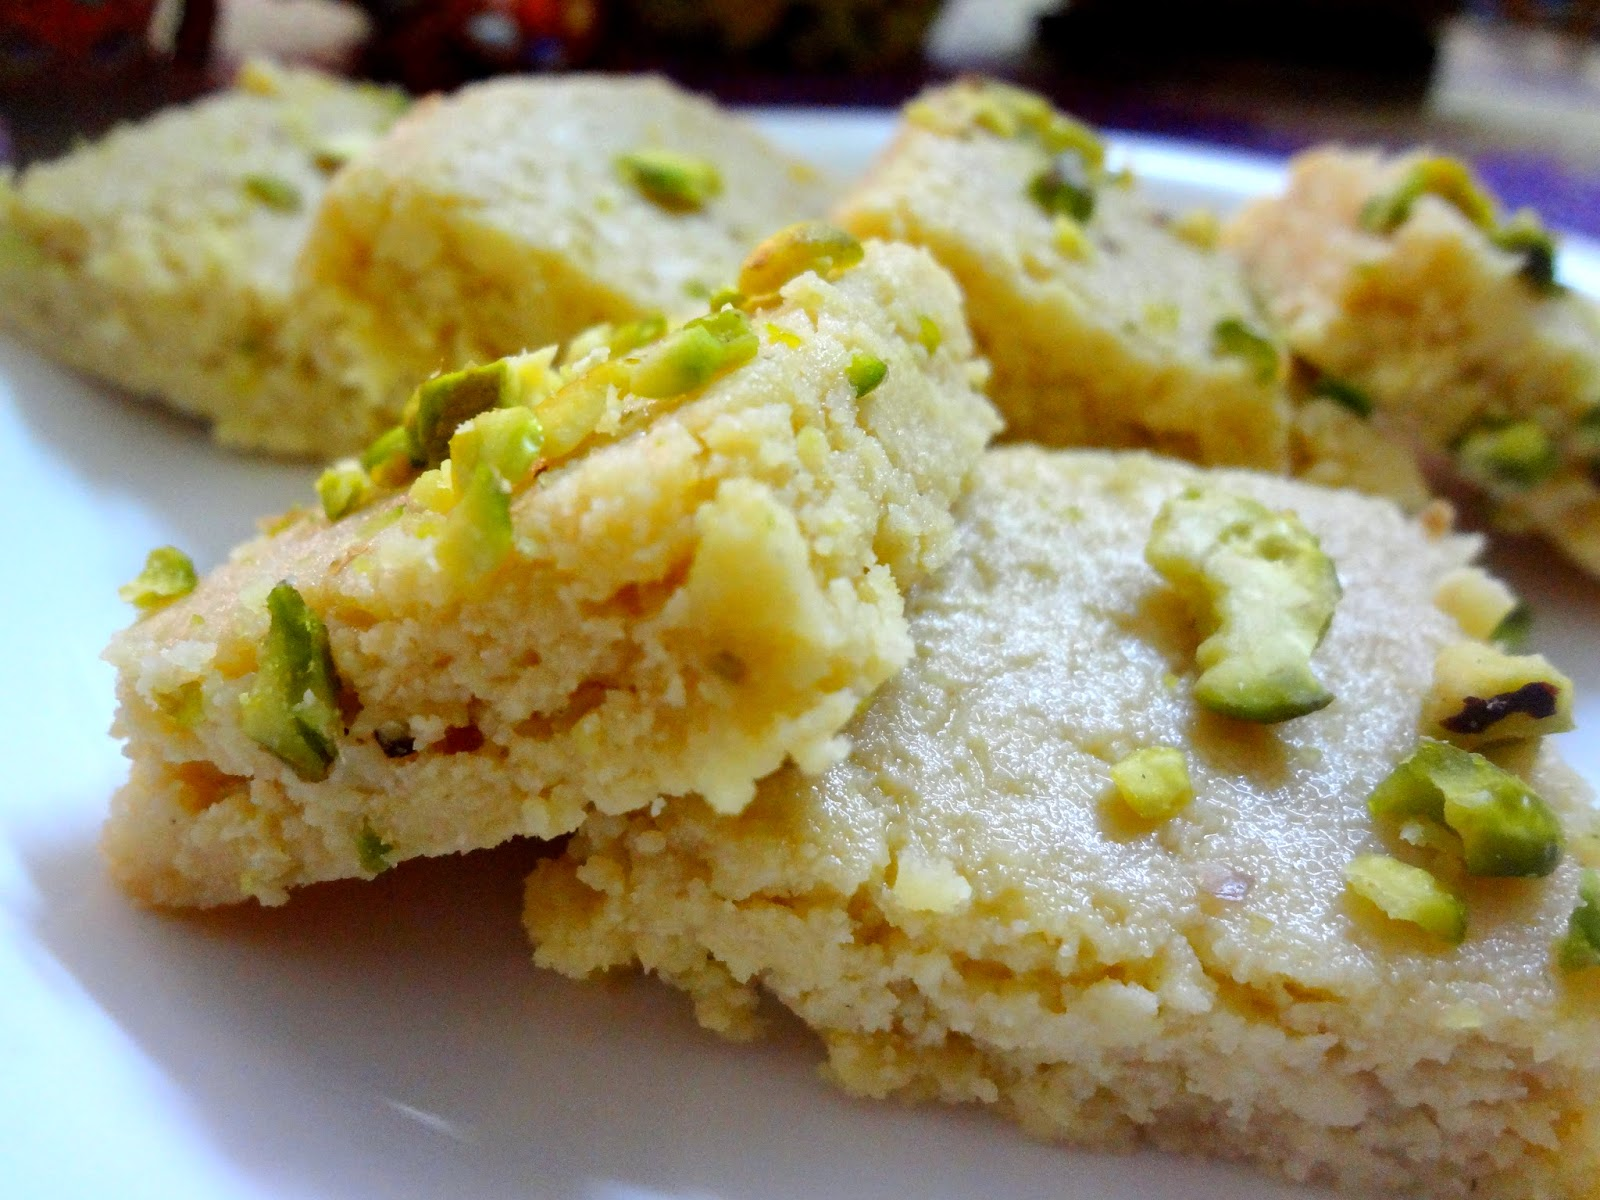 kalakand Bengali sweet made with condensed milk.